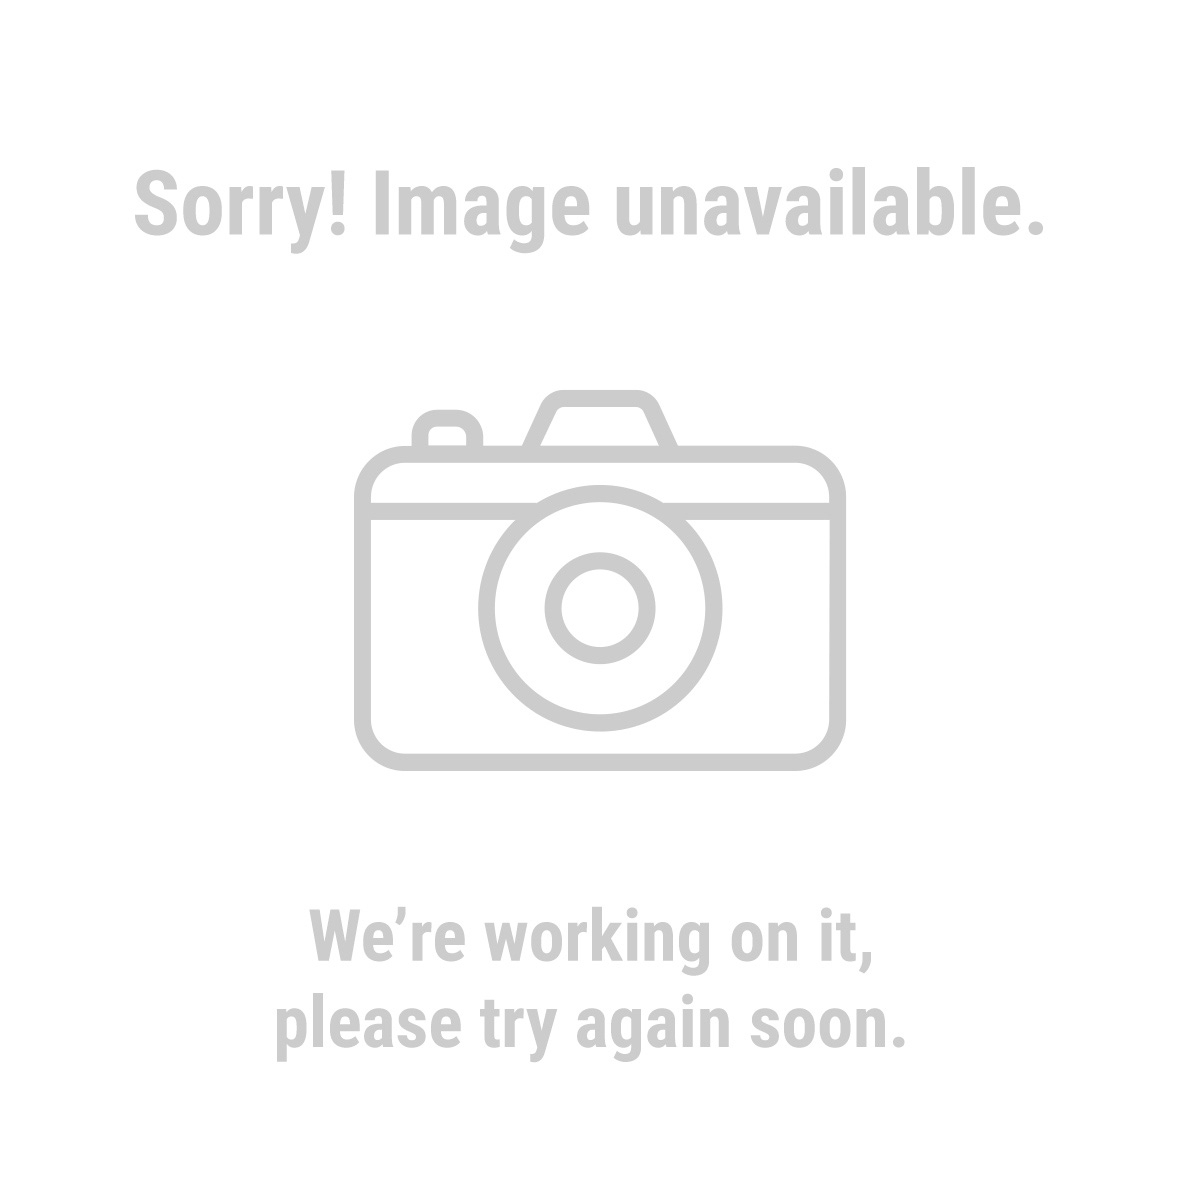 Central Machinery® 61484 20 in. Floor Mount Drill Press, 12 Speed